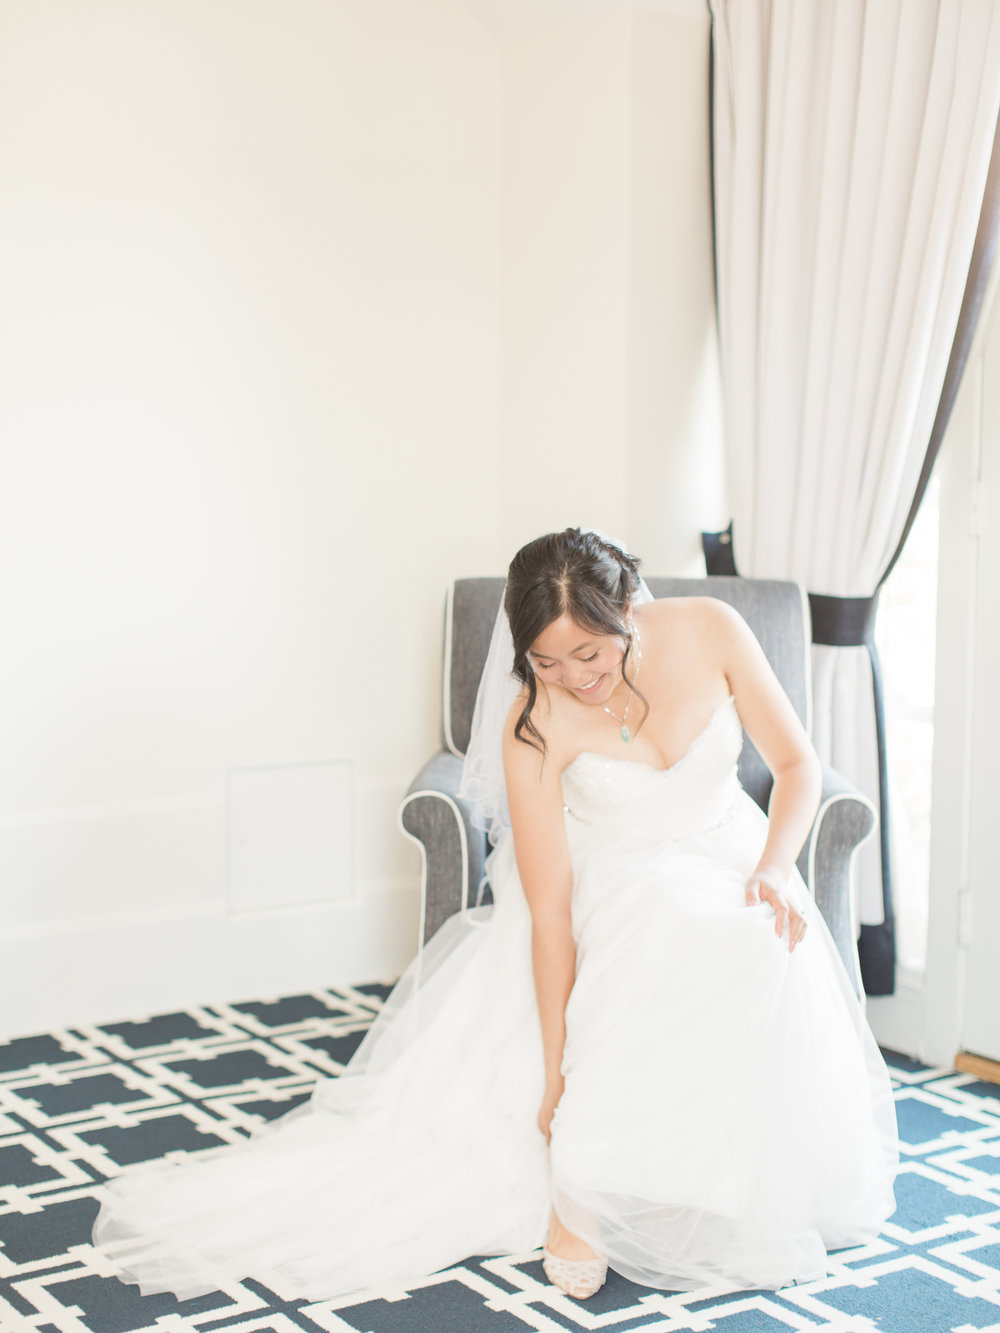 trynhphoto_wedding_photography_Standford_PaloAlto_SF_BayArea_Destination_OC_HA-23.jpg